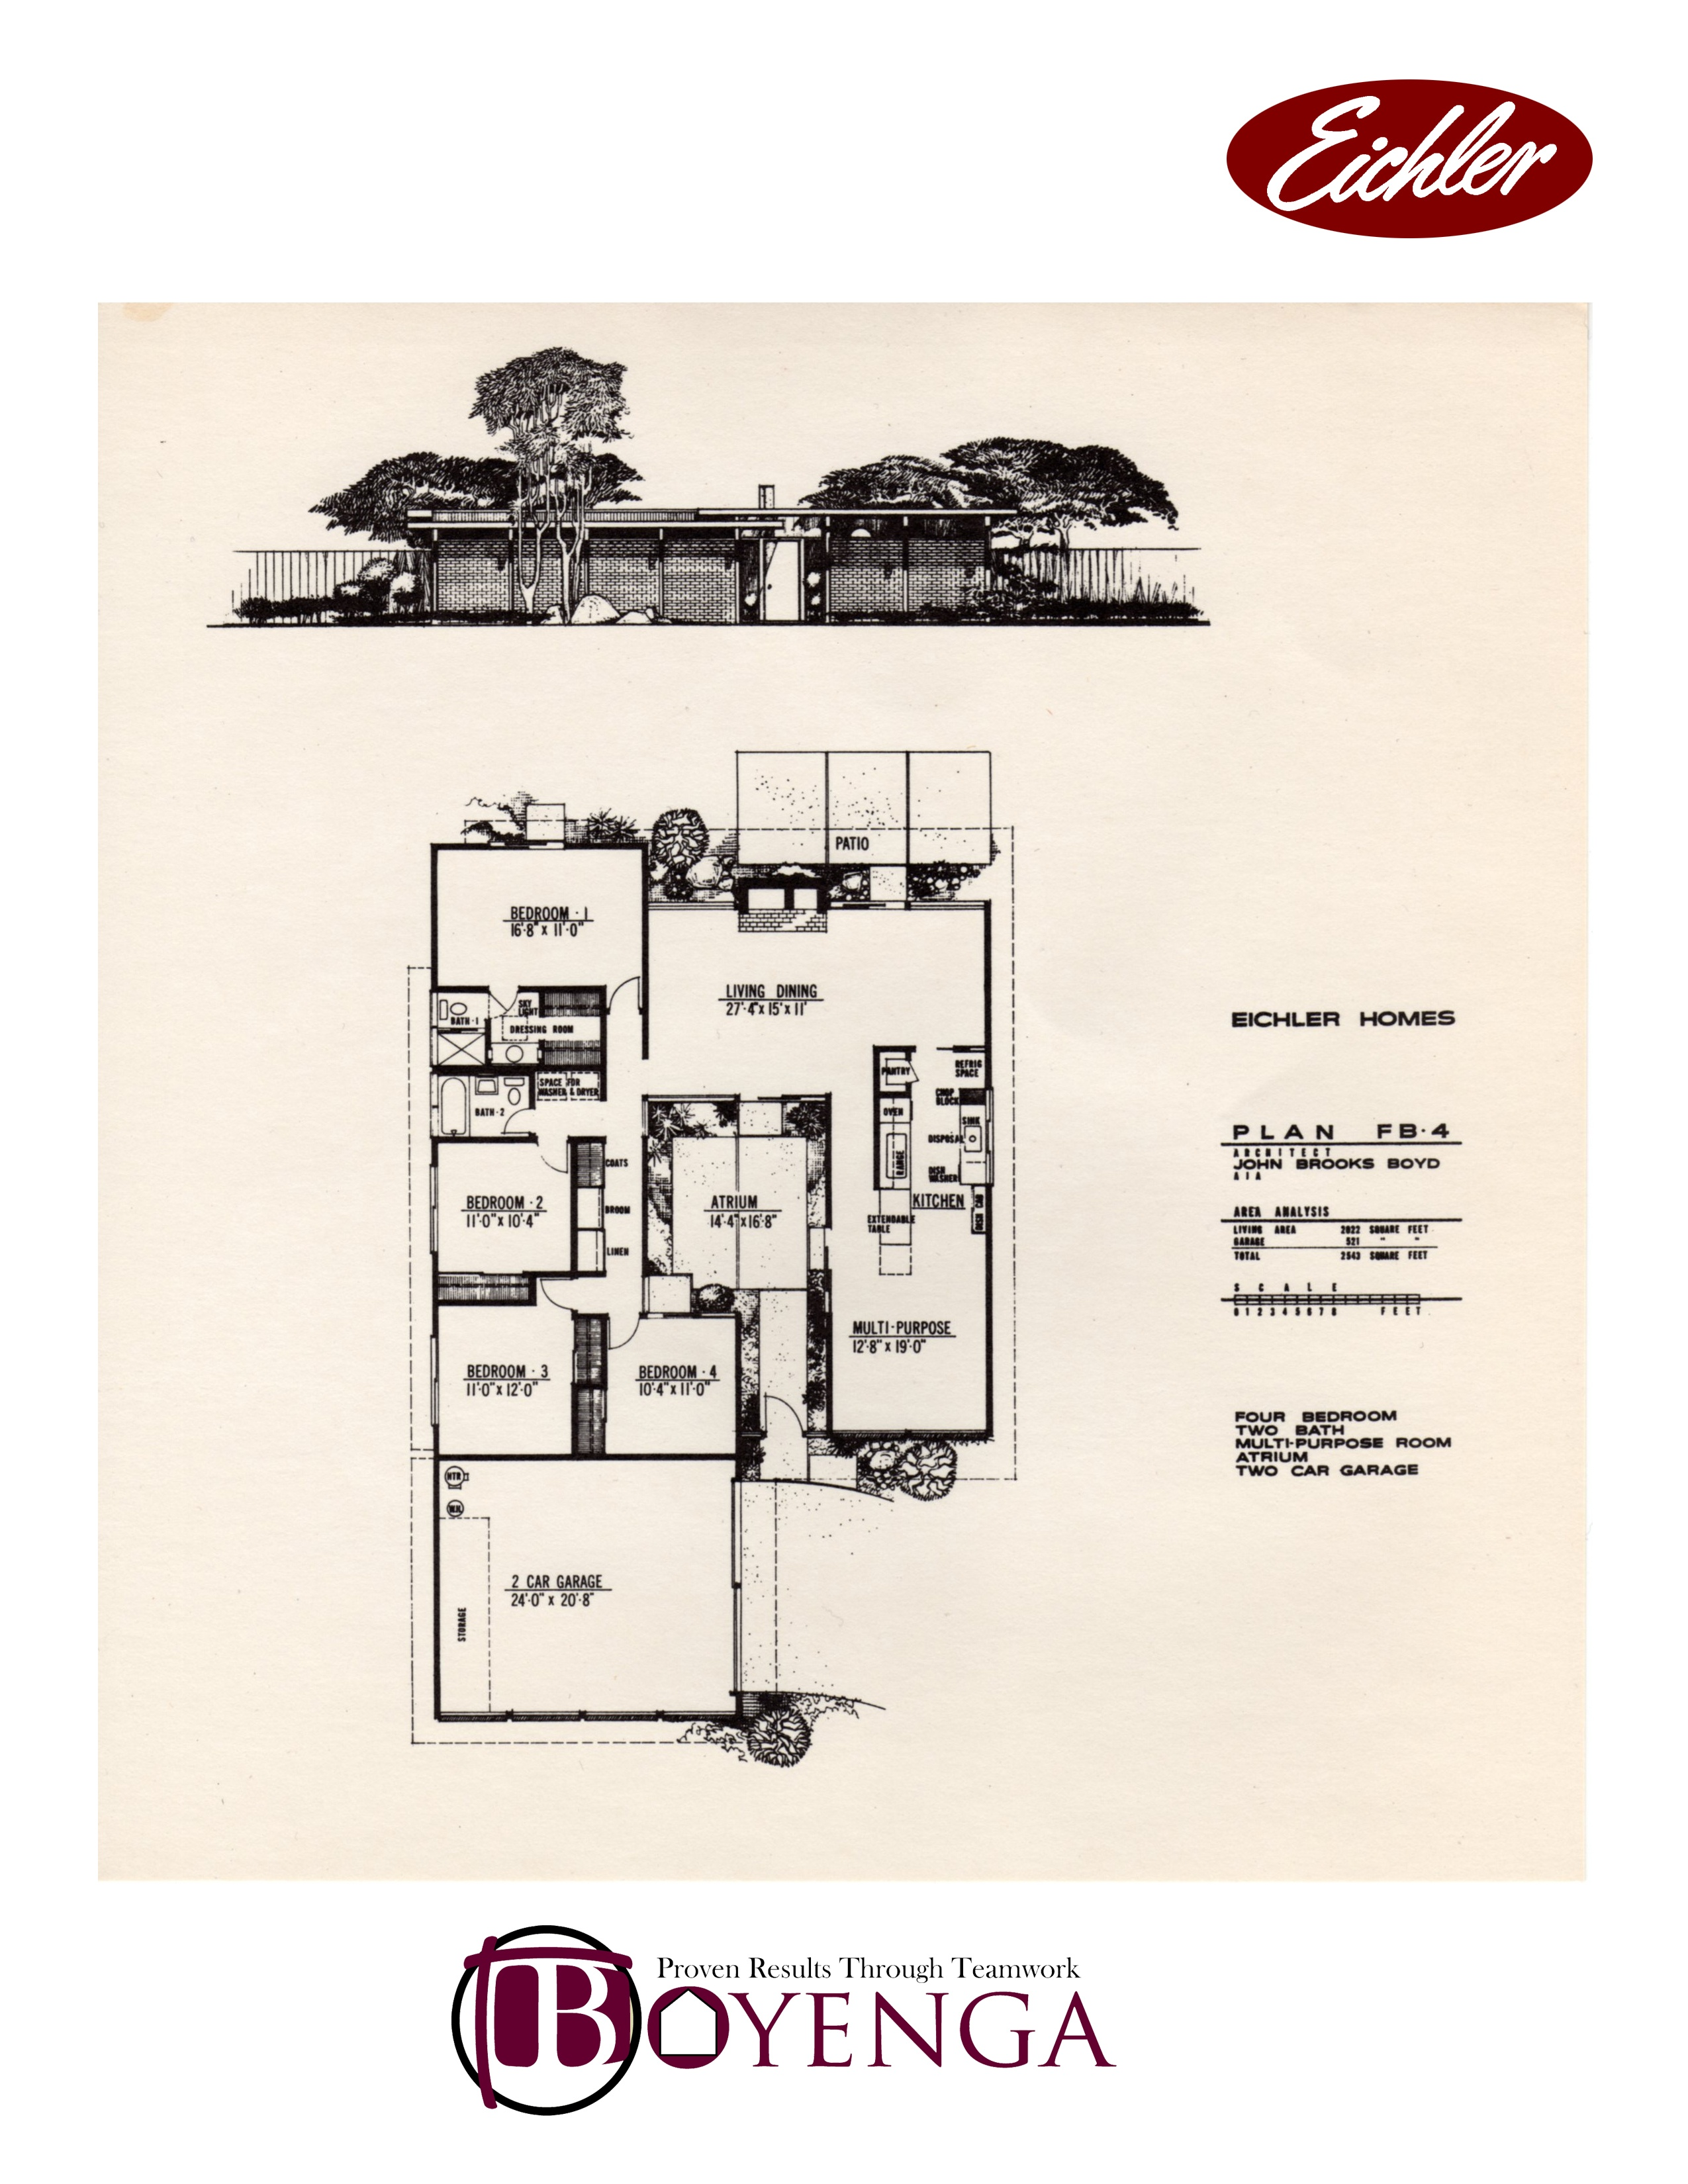 foster city eichler real estate floor plans foster city mid eichler floor plan fb 4